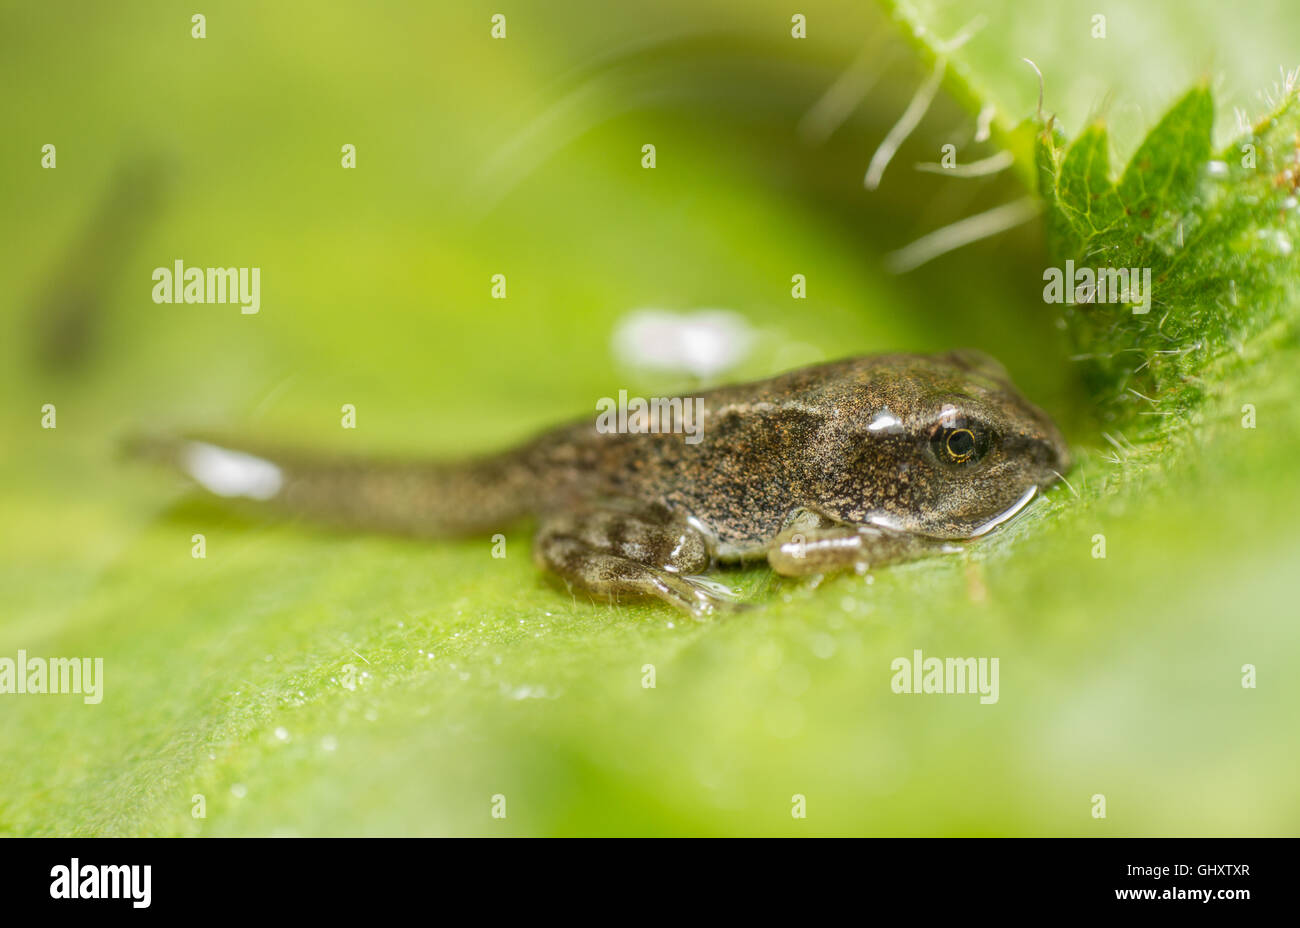 A Common Frog (Rana temporaria) tadpole makes it's first venture above the surface of the pond. - Stock Image